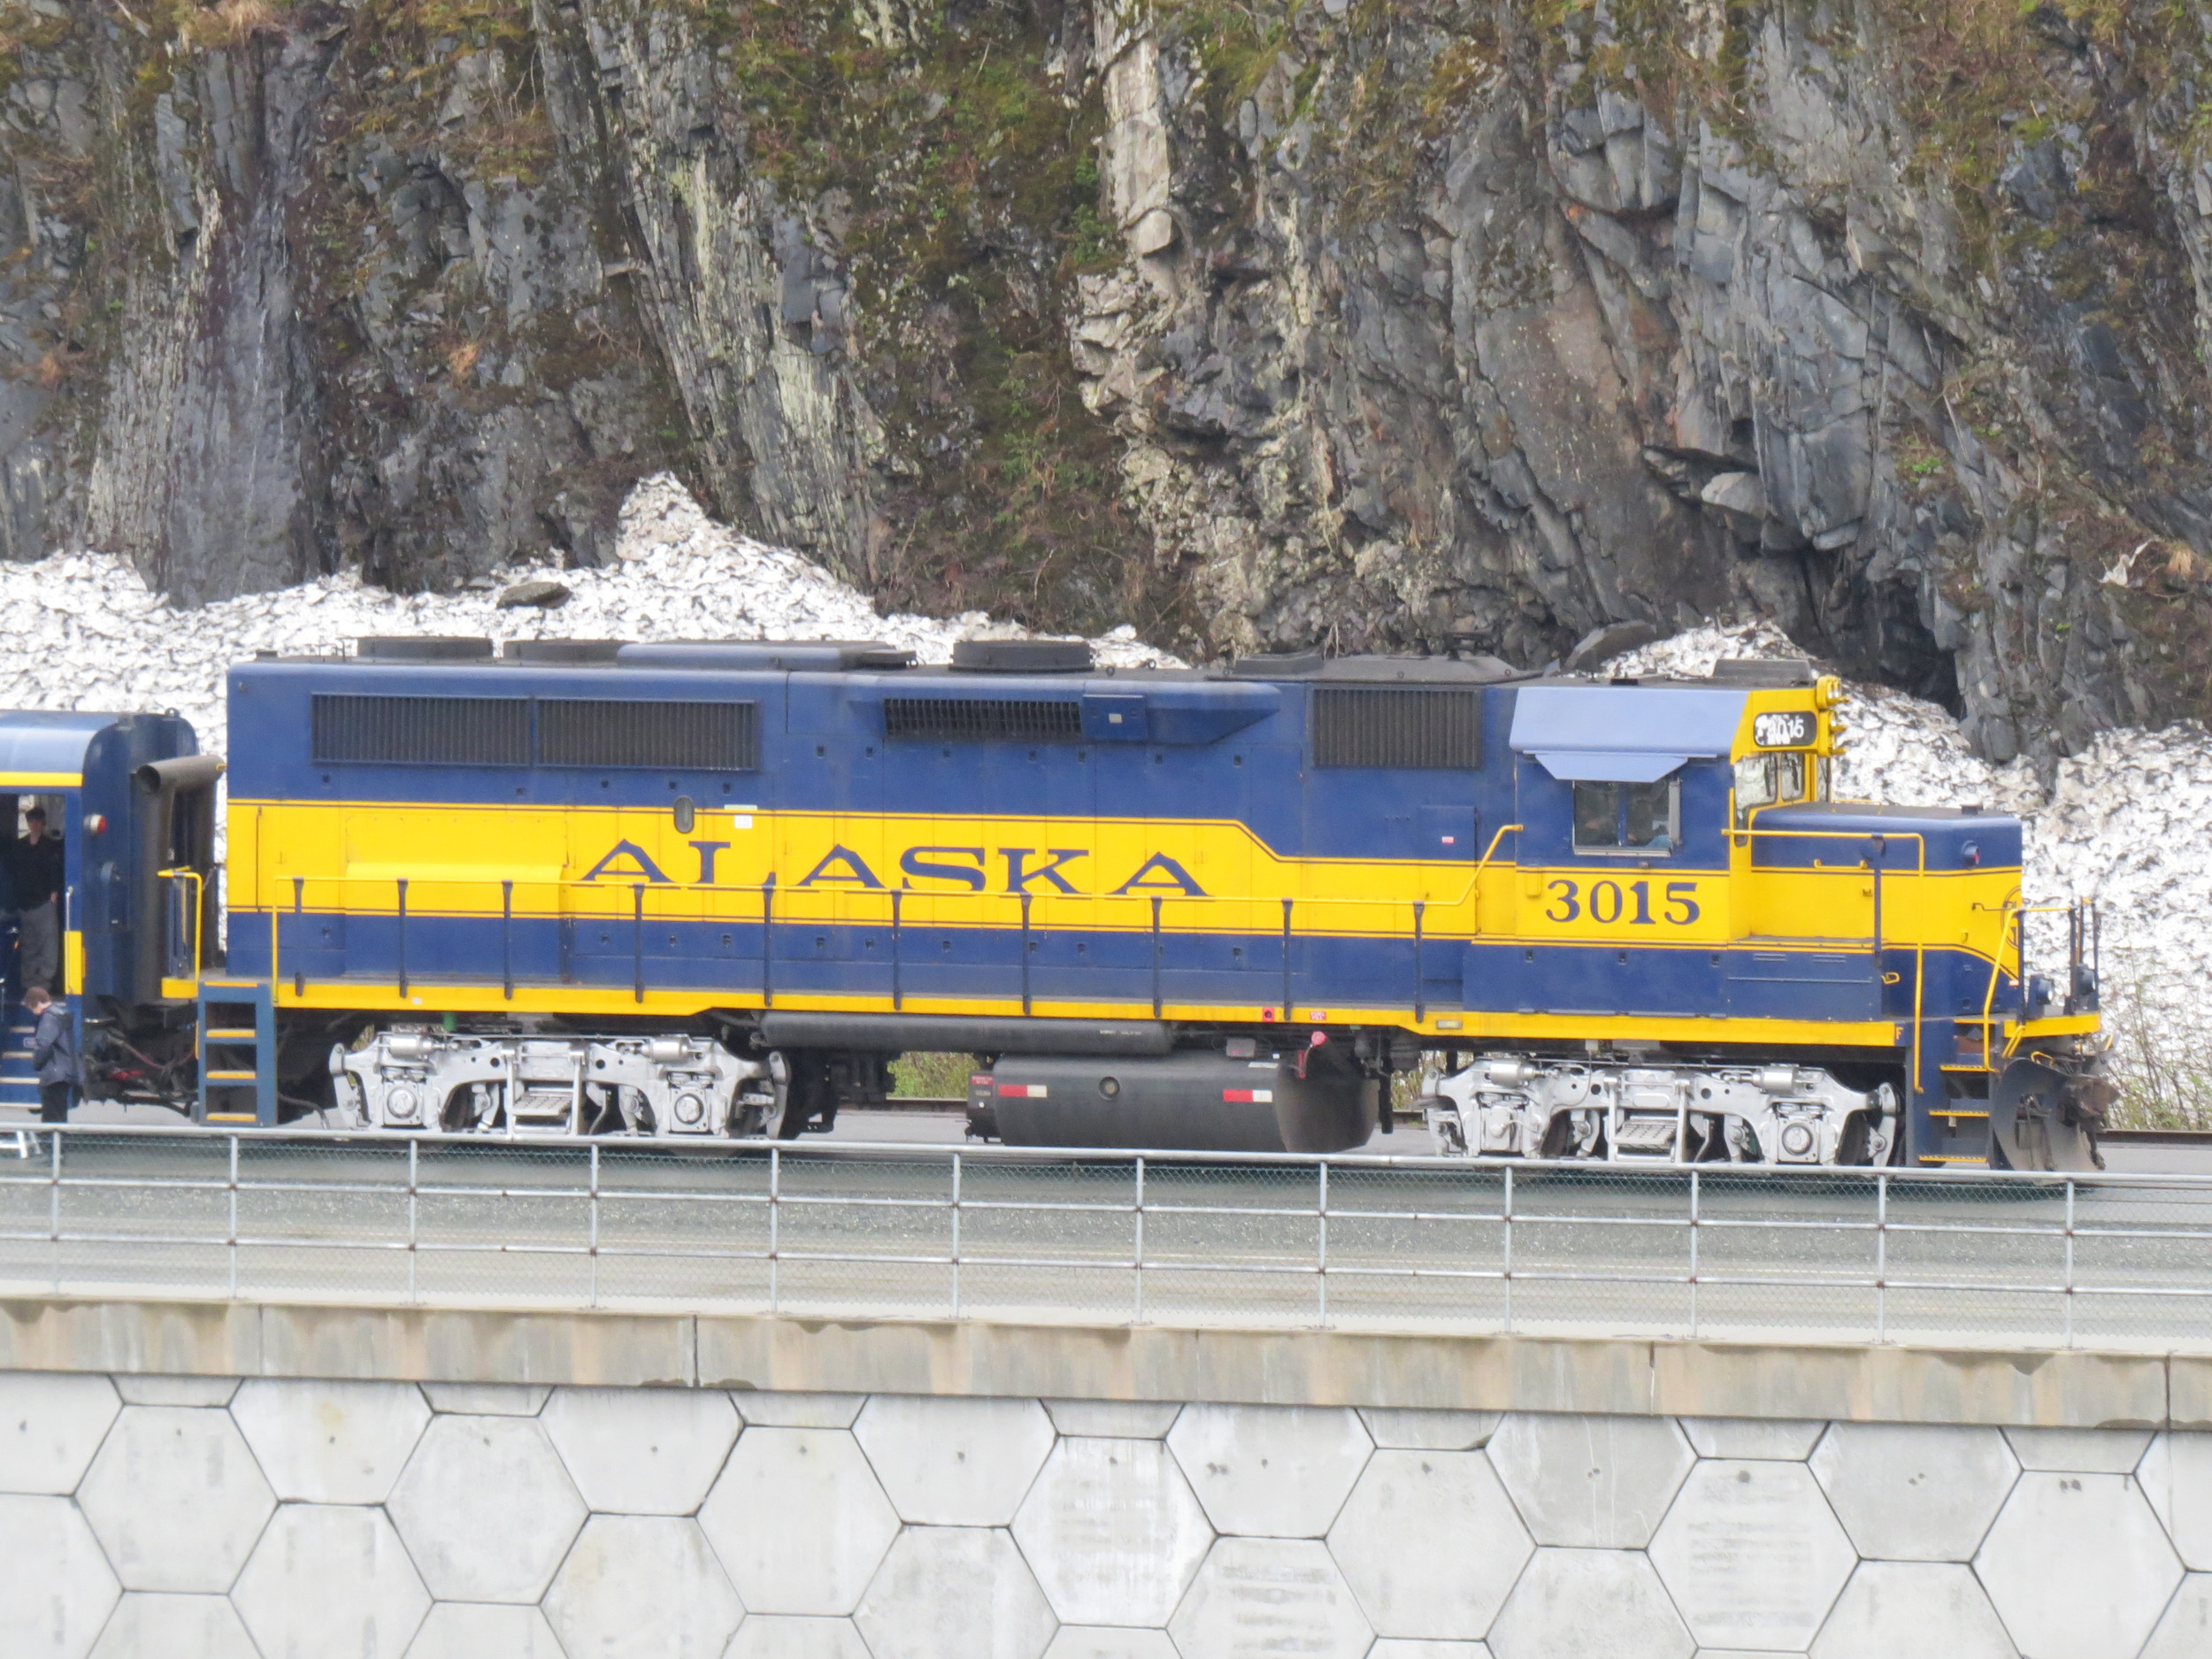 Visit Alaska and ride the rails. Contact EnjoyVacationing.com to learn more!